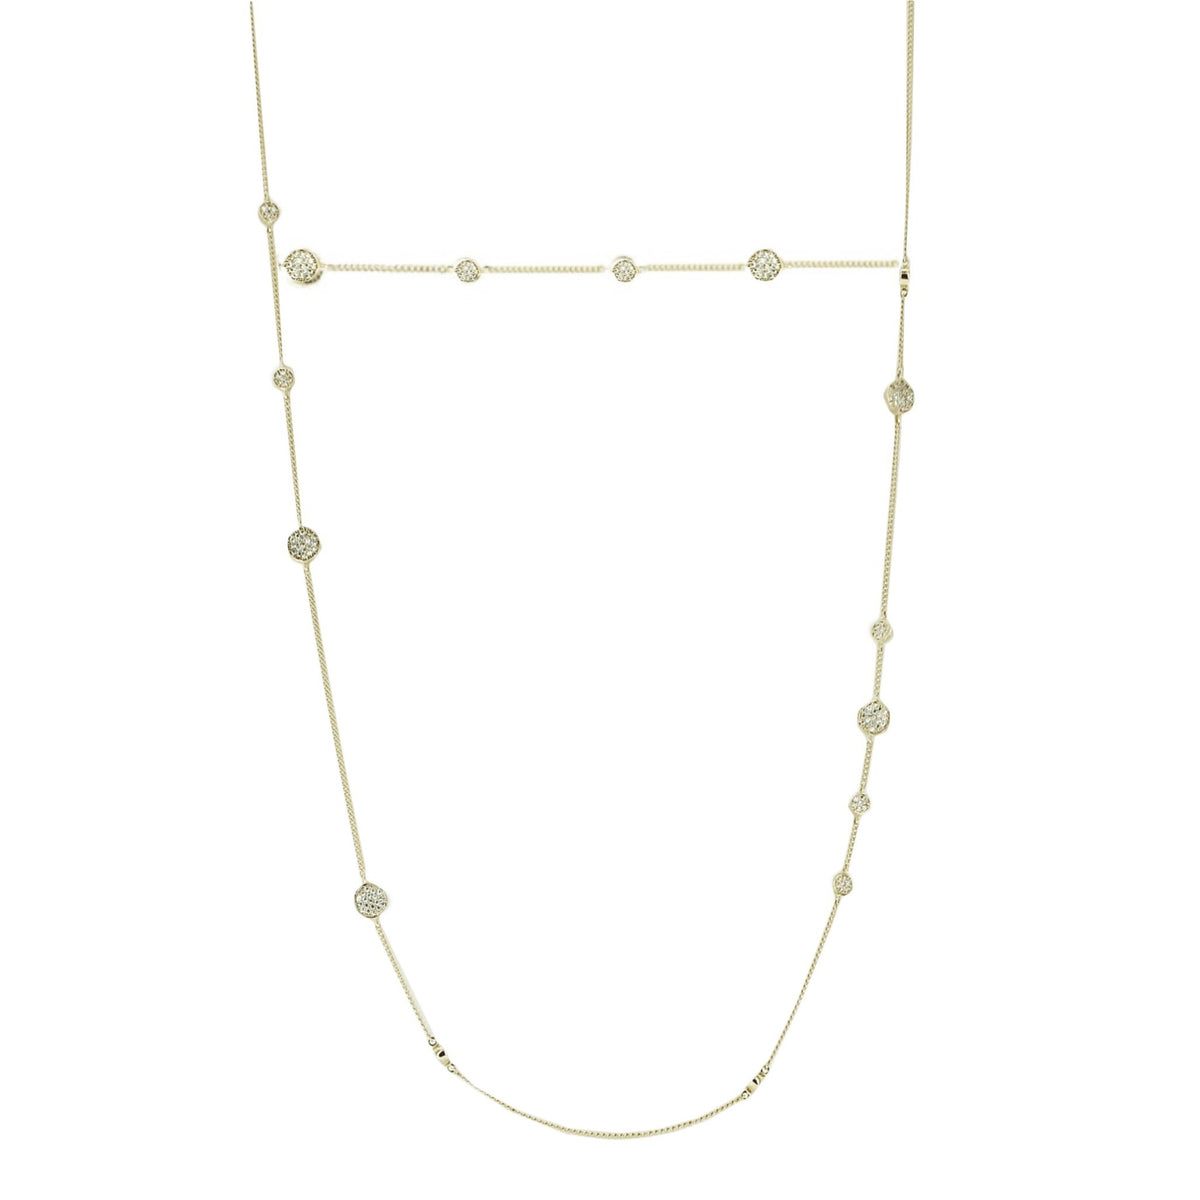 LONG XO LOVE CHOKER NECKLACE - CUBIC ZIRCONIA & SILVER - SO PRETTY CARA COTTER